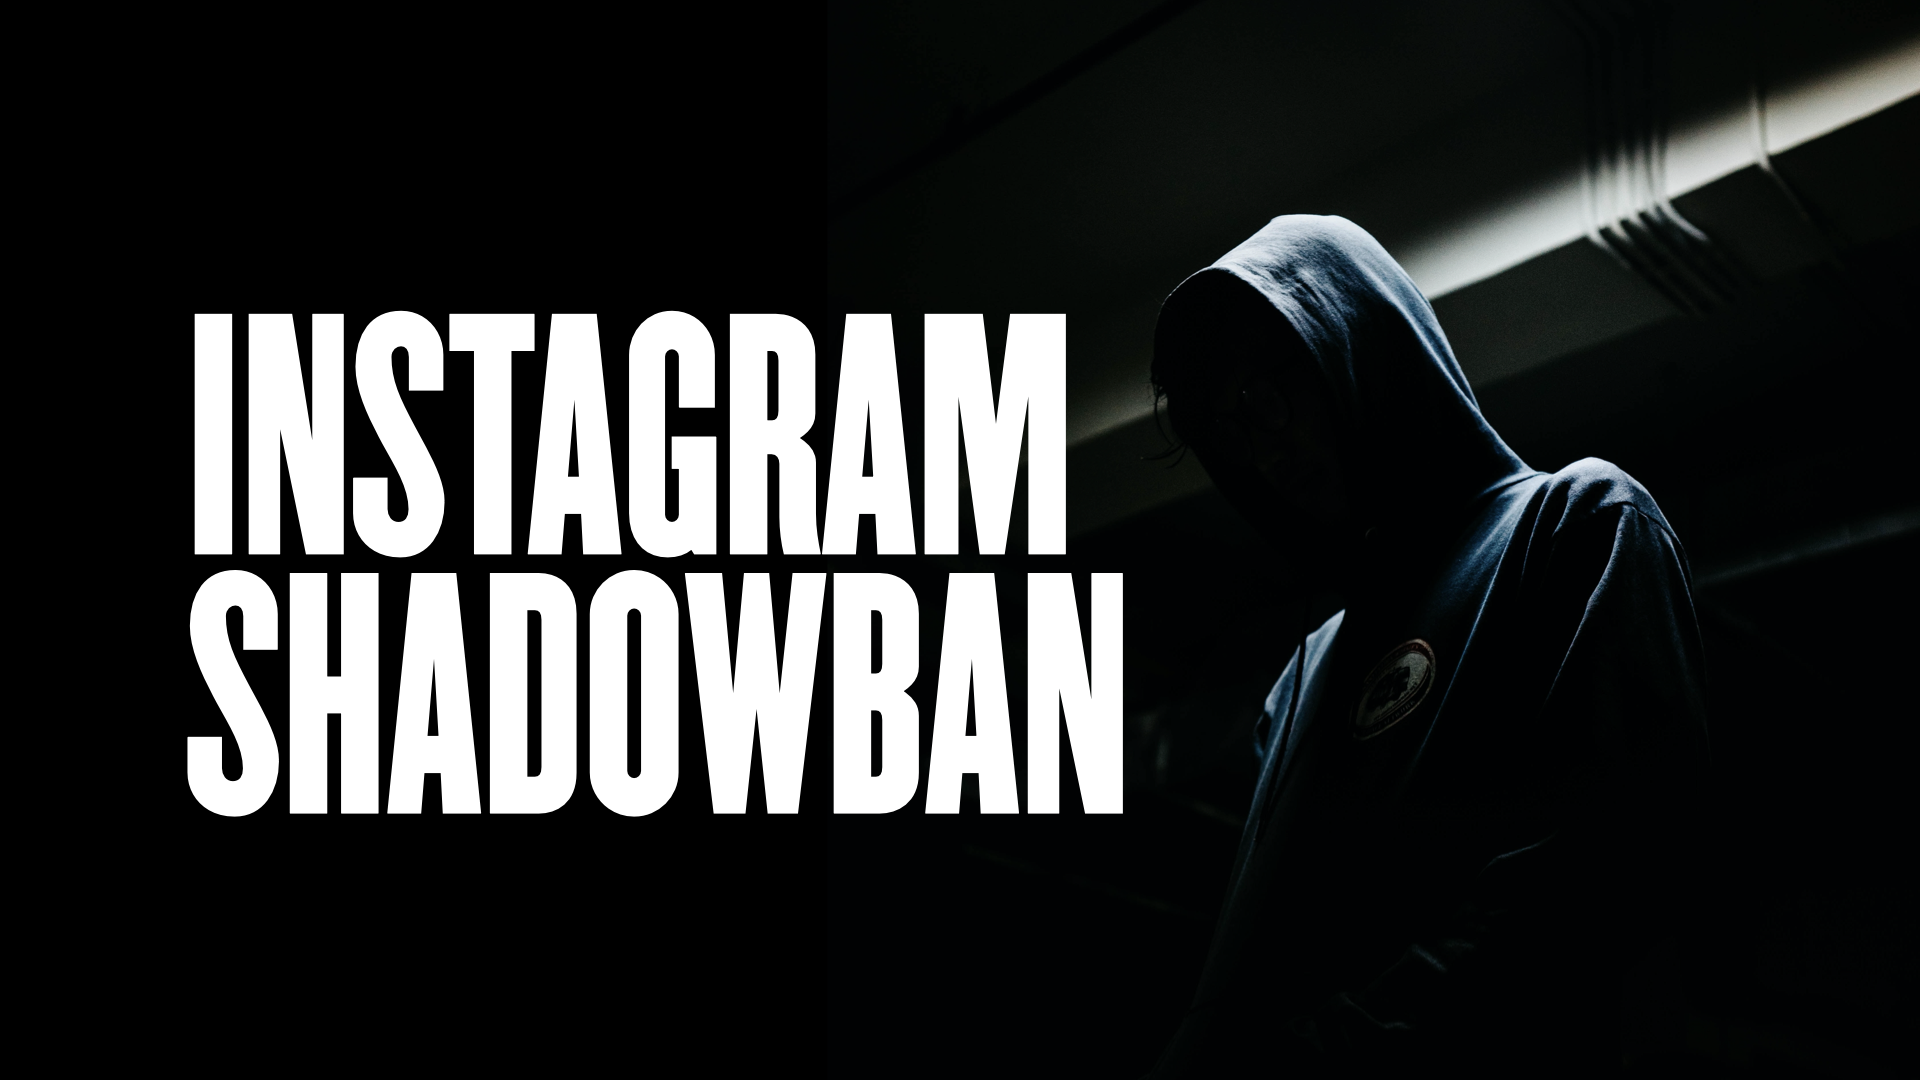 Instagram Shadowban article cover photo